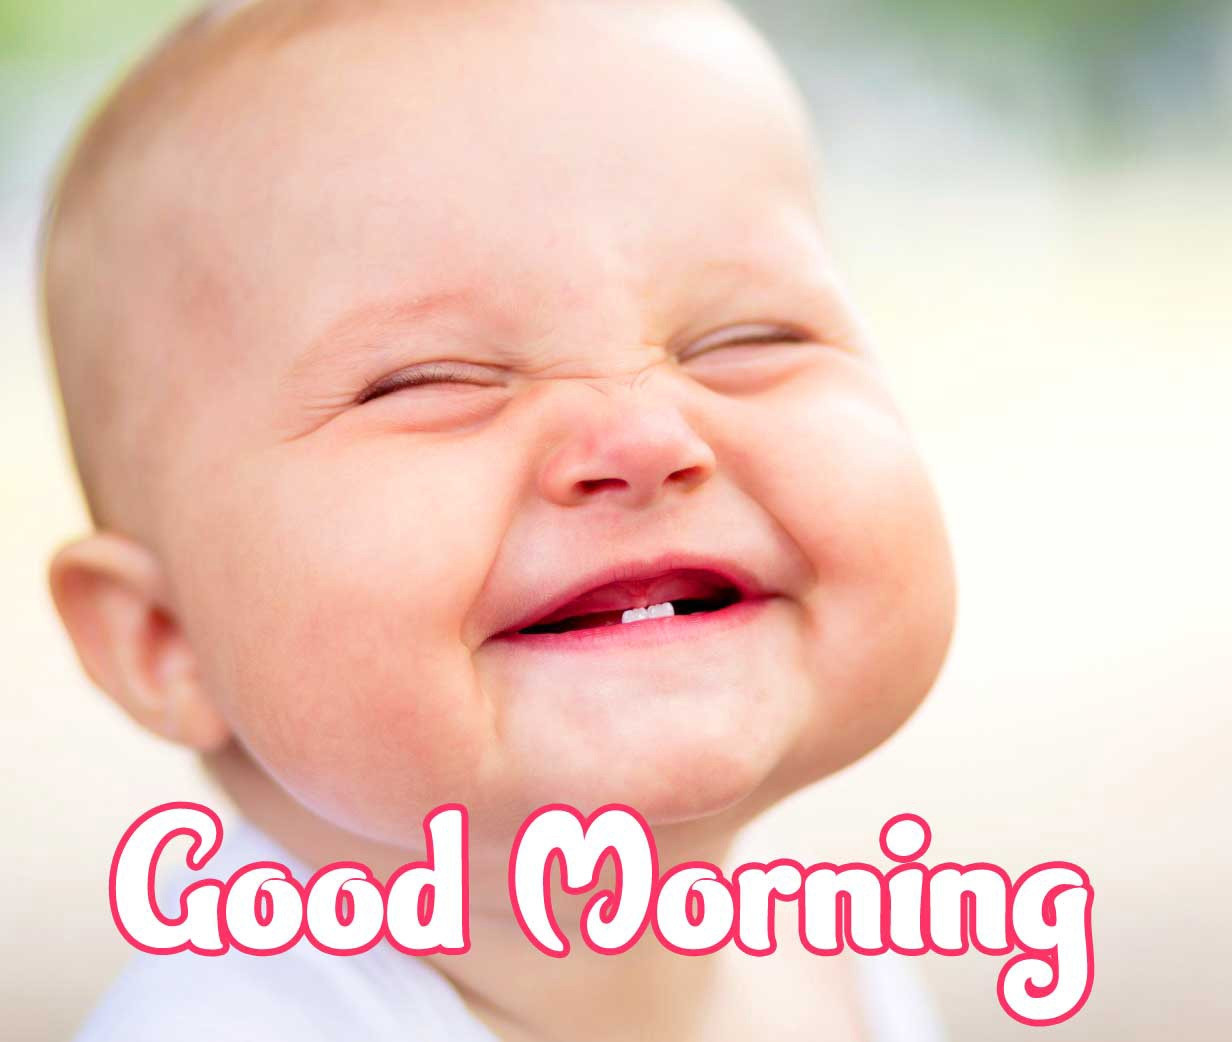 Good Morning Small Baby Images Pics Latest Download